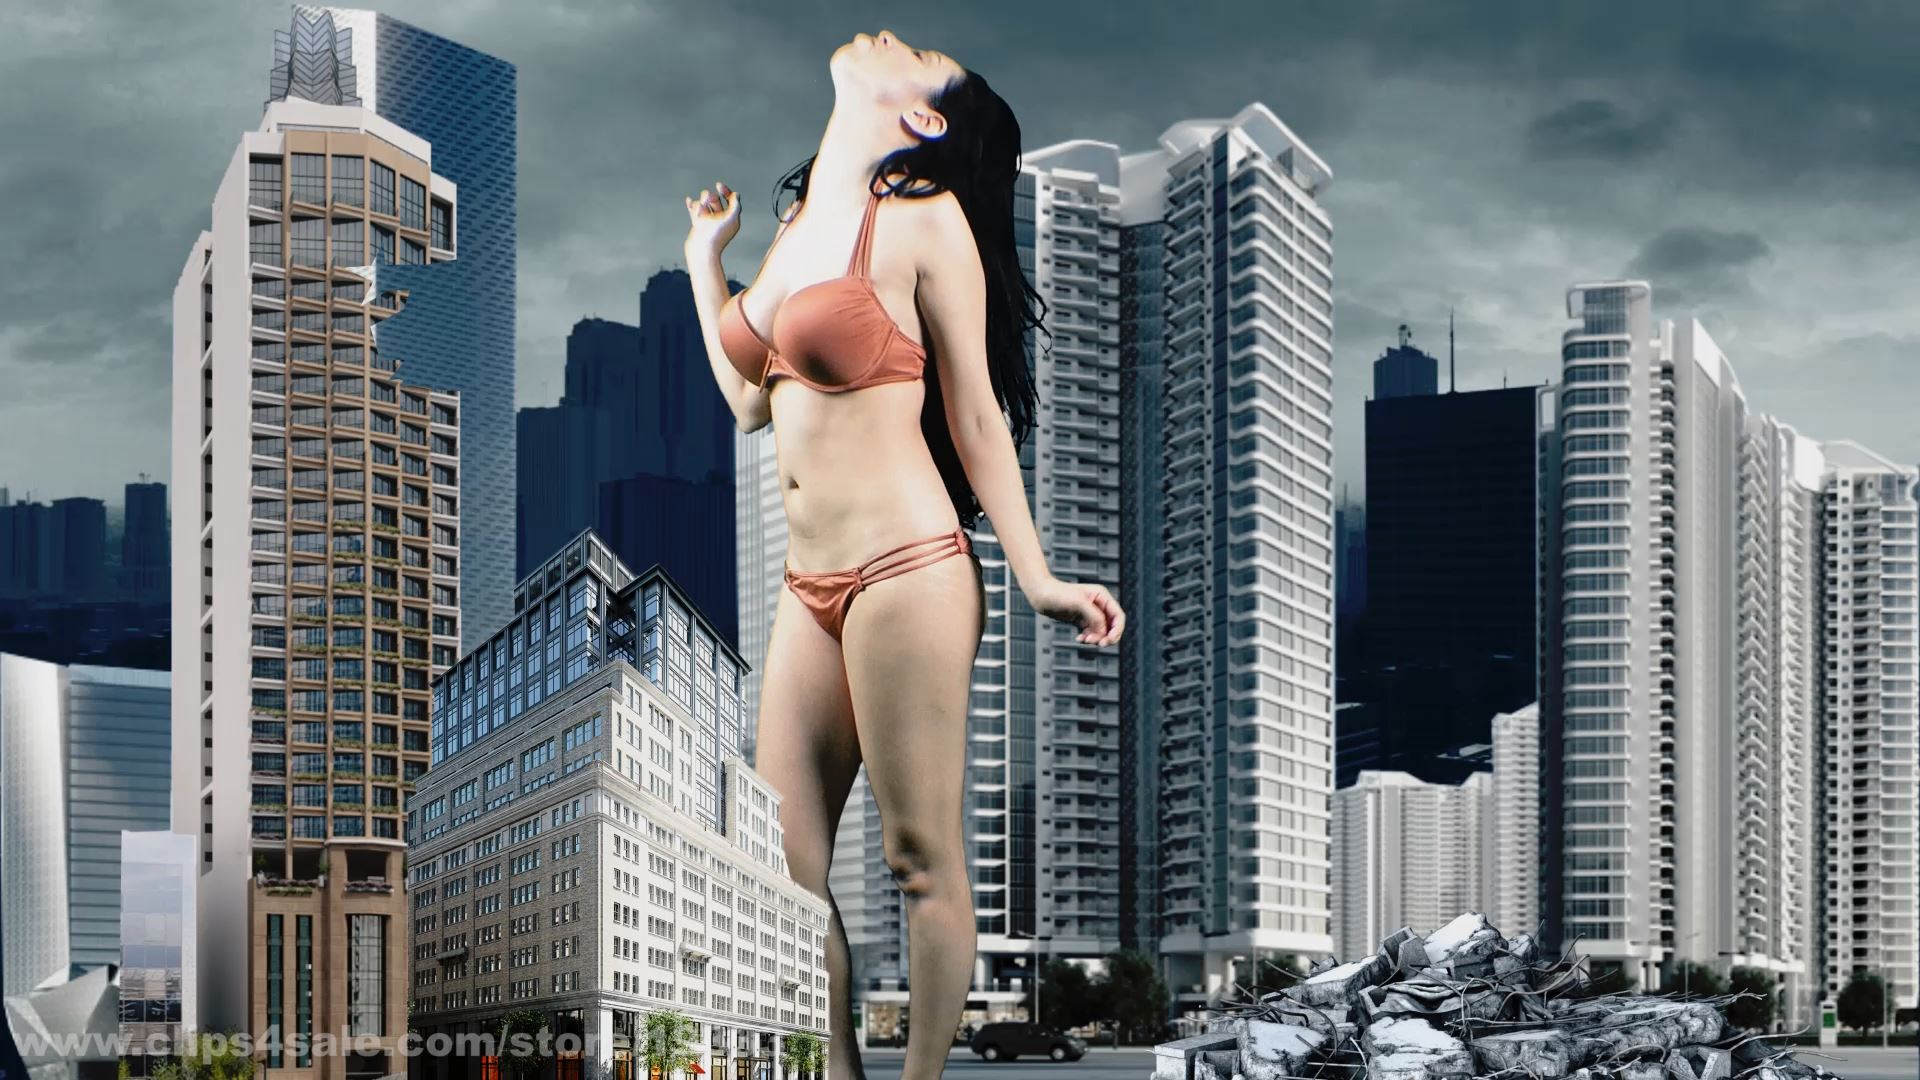 Cydelzilla Growth - GIANTESS SHRINKING FEET - FULL HD/1080p/MP4